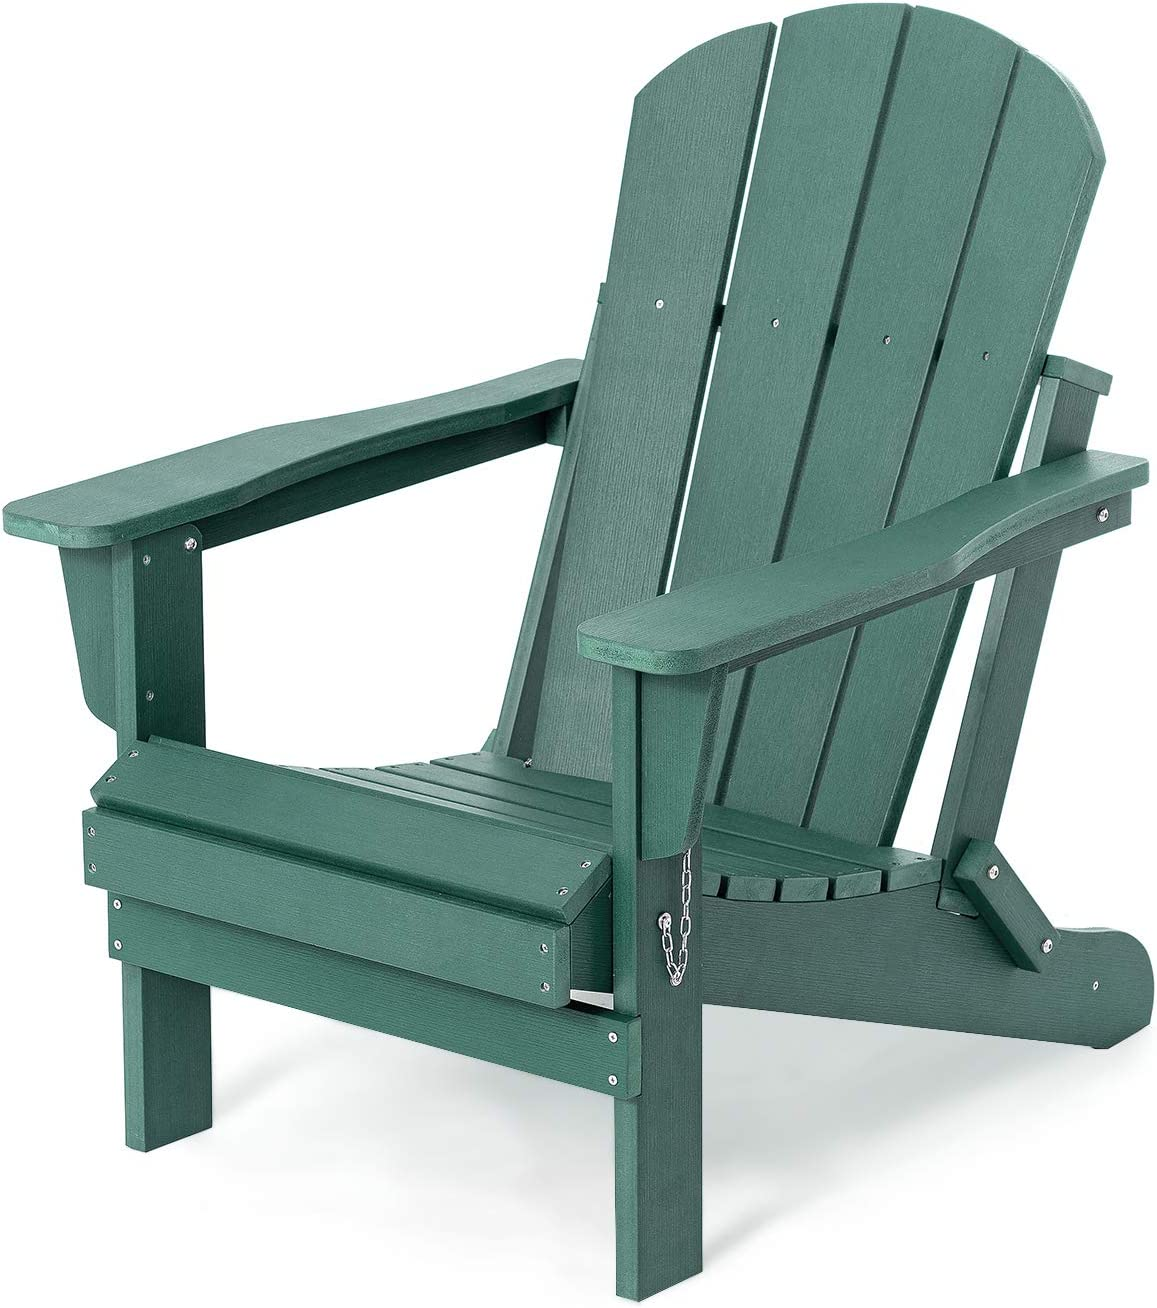 Folding Adirondack Chair Patio Chairs Lawn Chair Outdoor Chairs Painted Adirondack Chair Weather Resistant for Patio Deck Garden, Backyard Deck, Fire Pit & Lawn Furniture Porch and Lawn Seating- Green